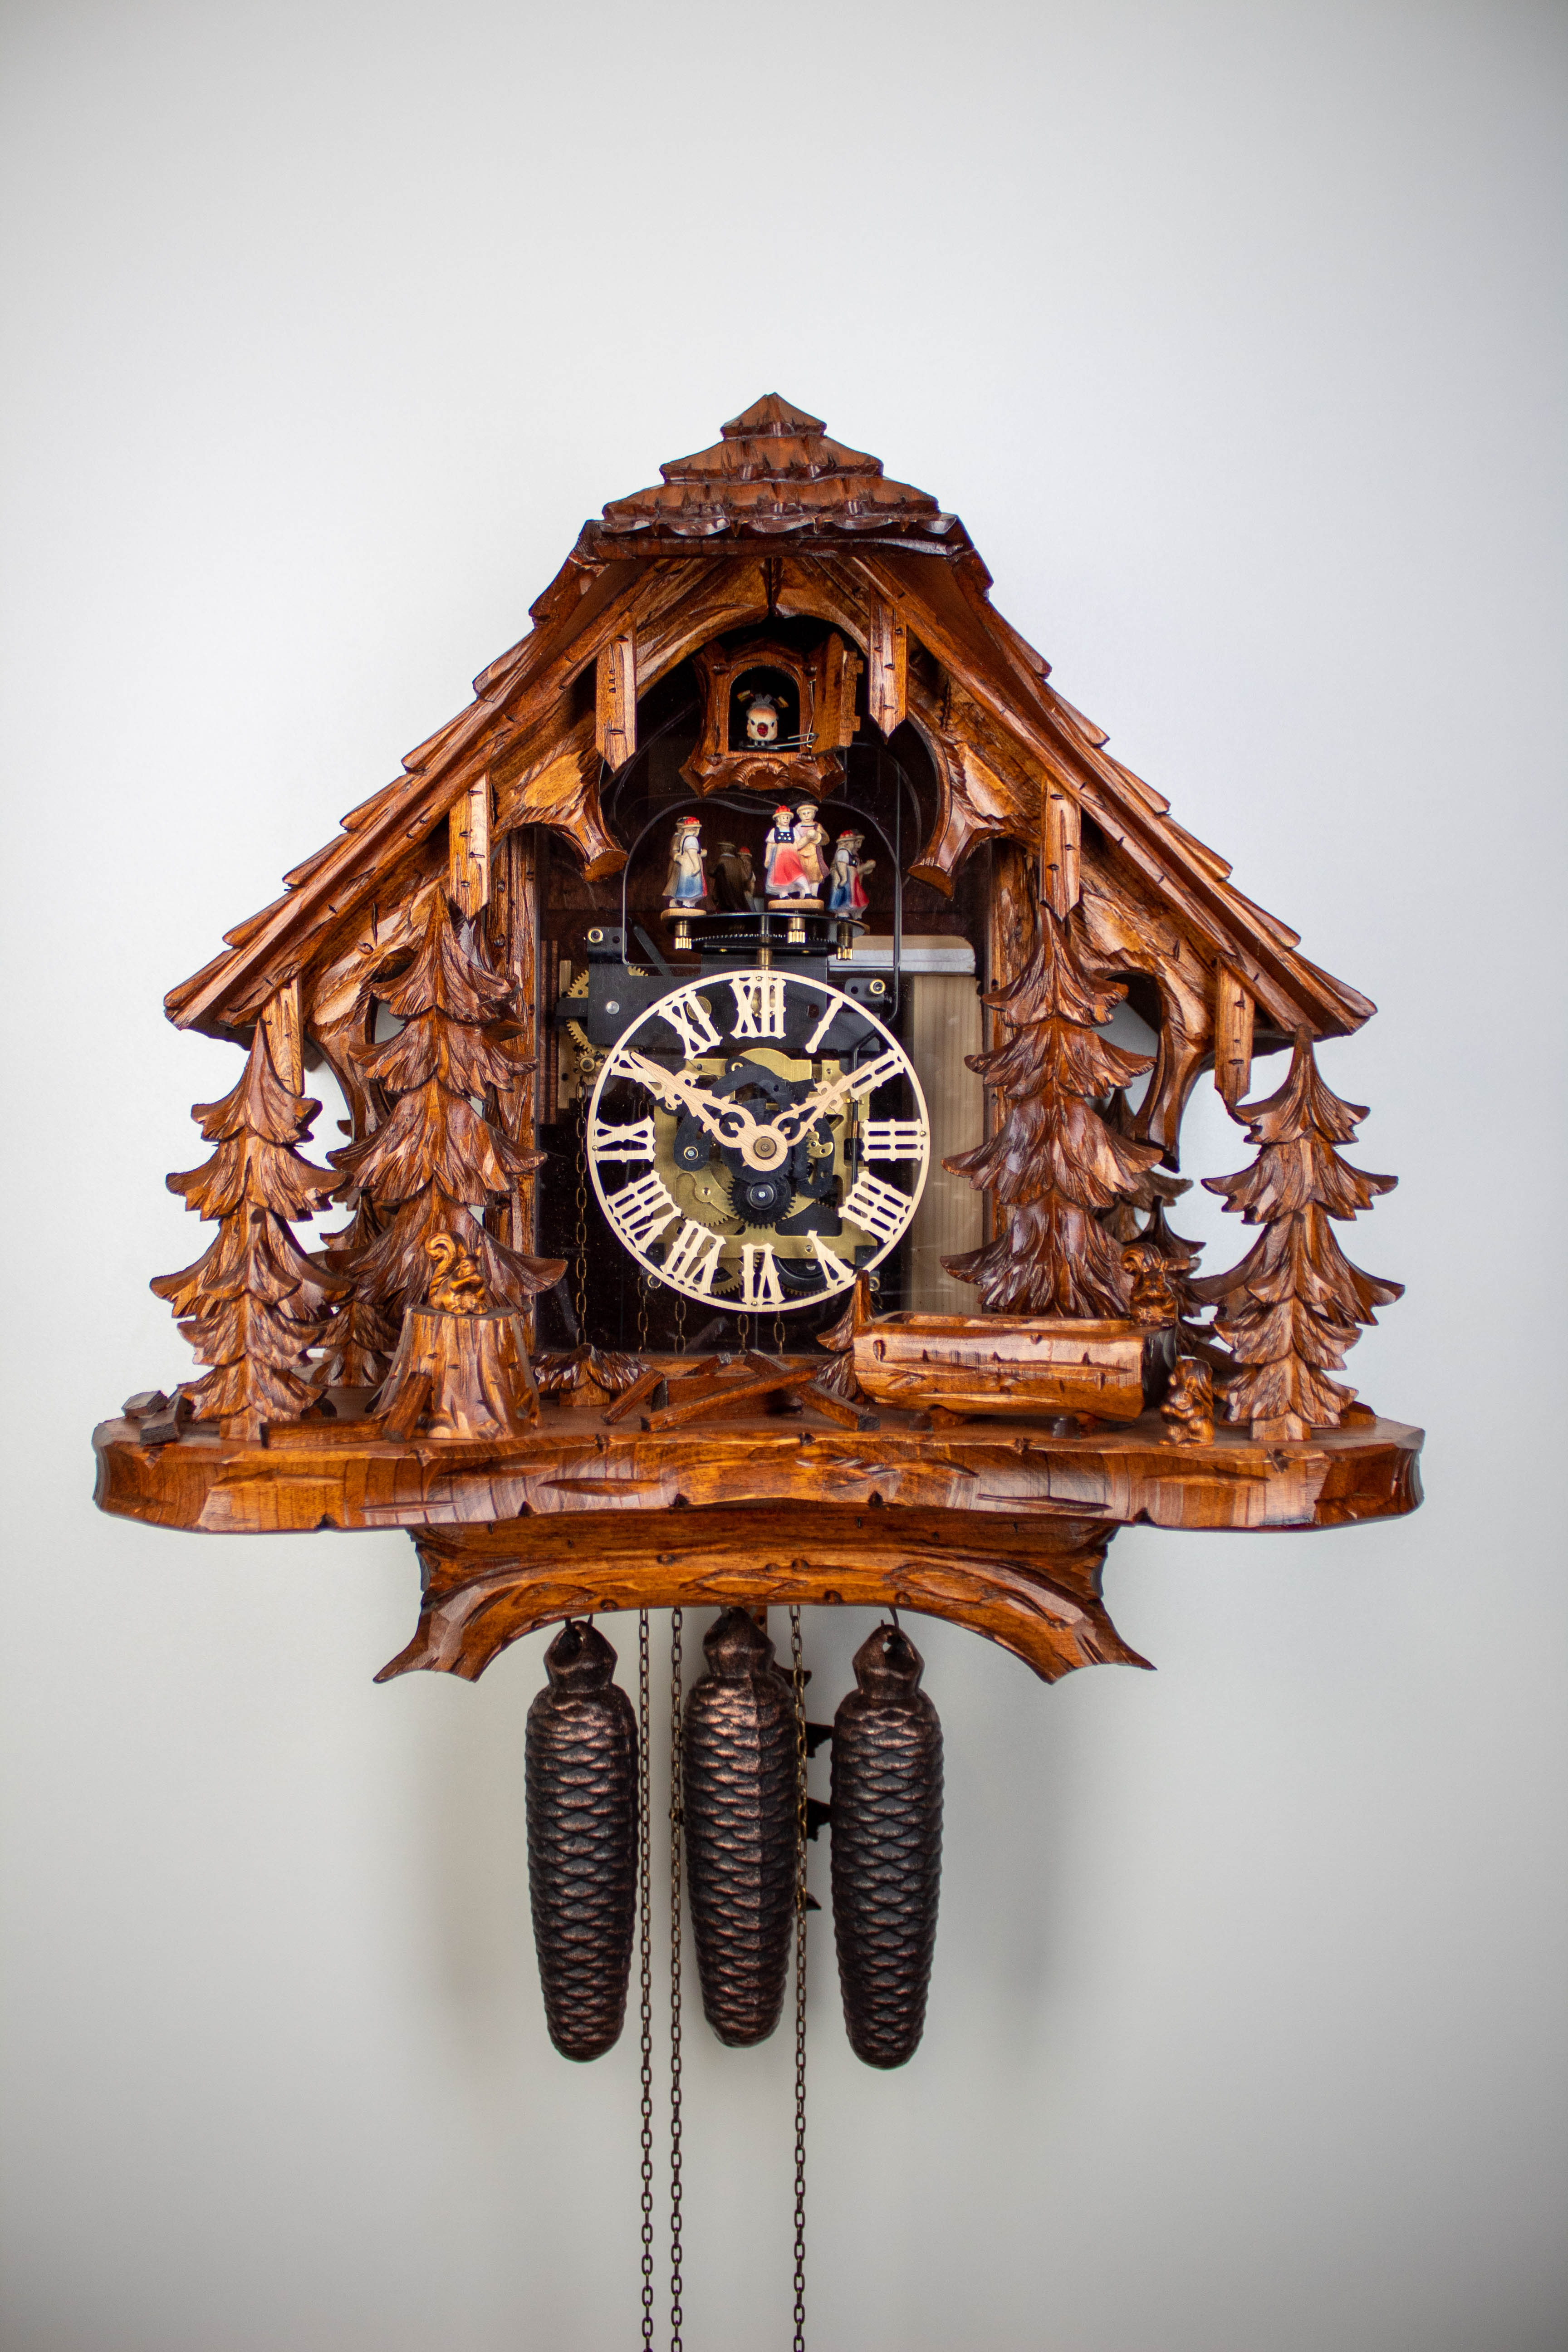 8 Days Cuckoo Clock Black Forest House with owl and squirrel with glass front